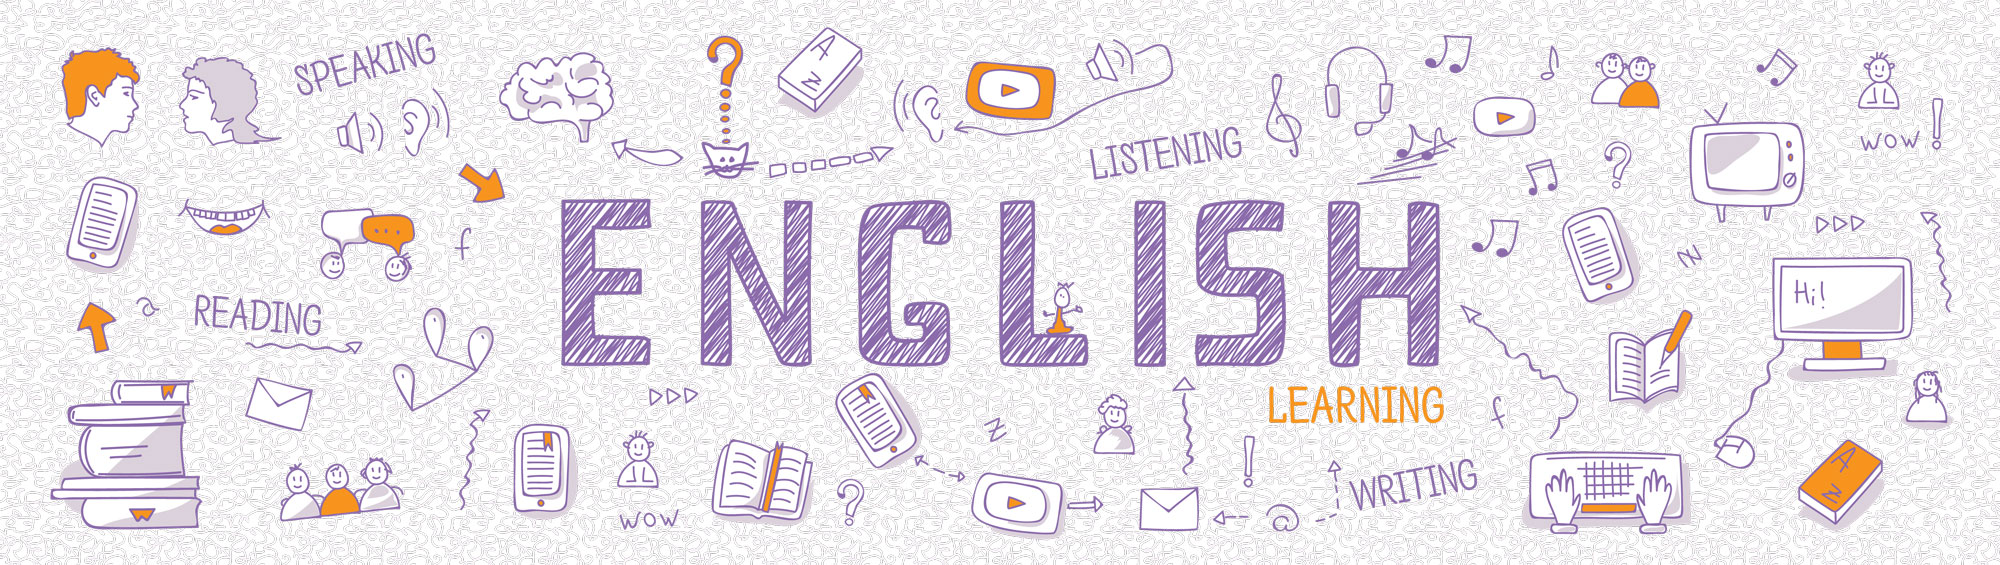 4 Ways to Teach English Skills